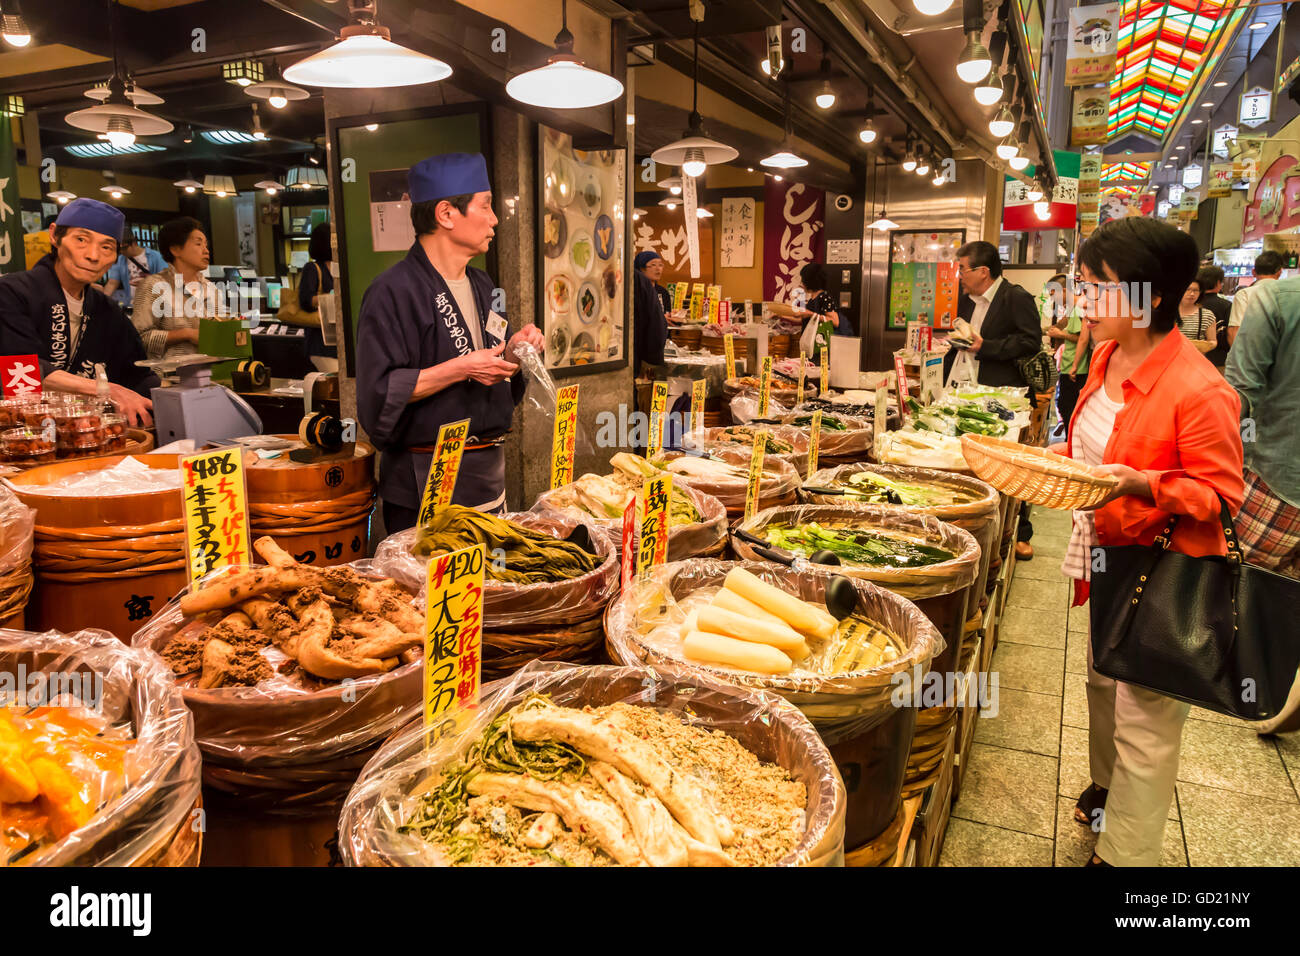 Shopper with basket considers purchase at local Japanese food stall, Nishiki Market, Downtown Kyoto, Japan, Asia - Stock Image